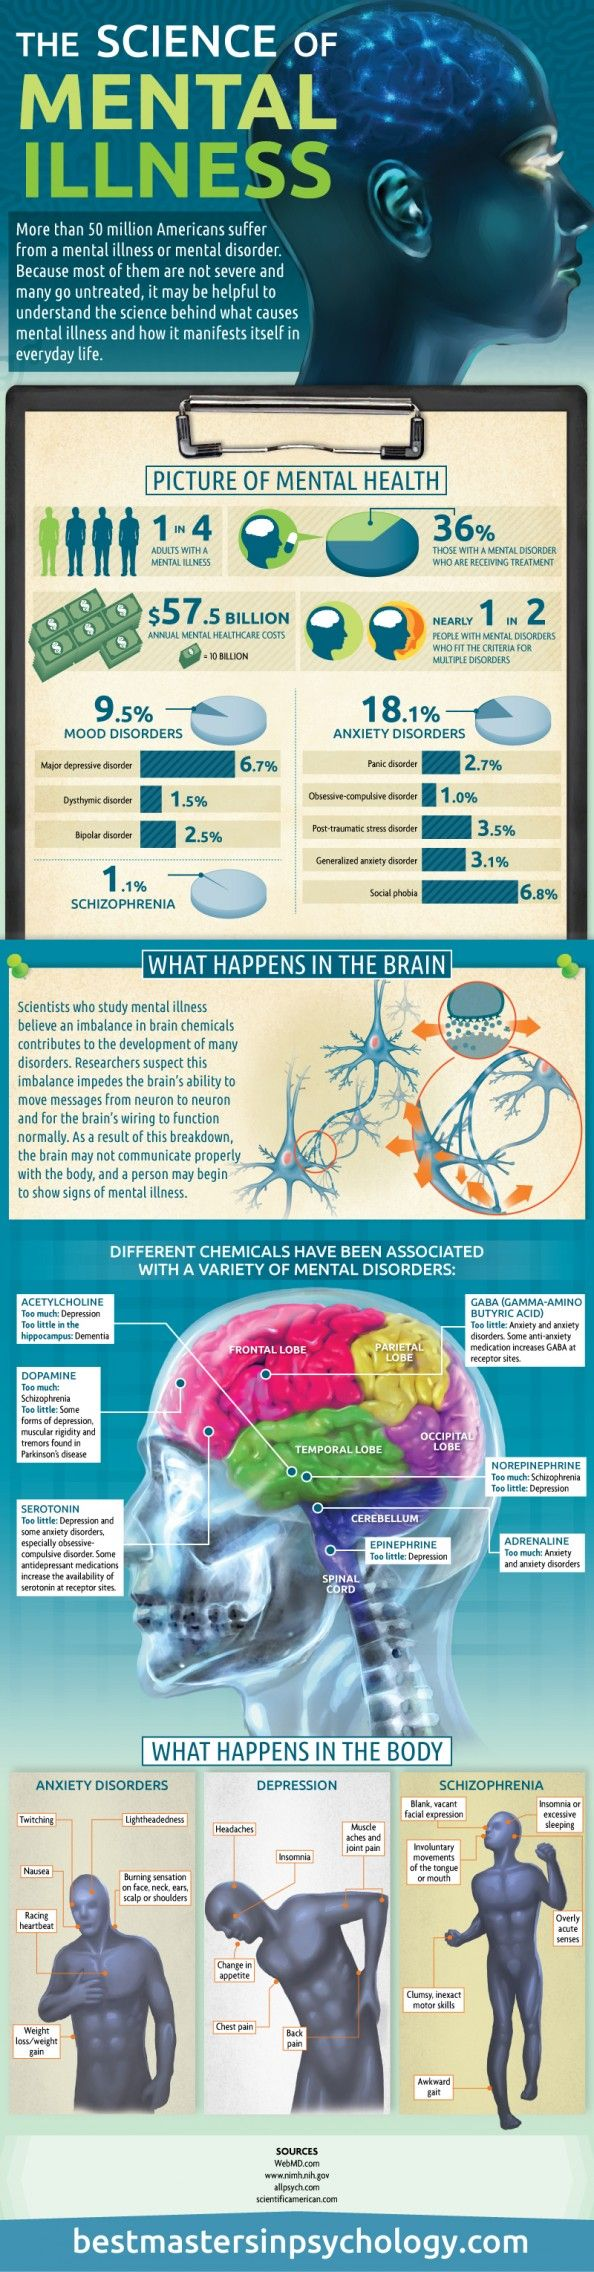 Abnormal-The Science of Mental Illness Infographic.  Interesting info, we all know someone who needs help - help them.